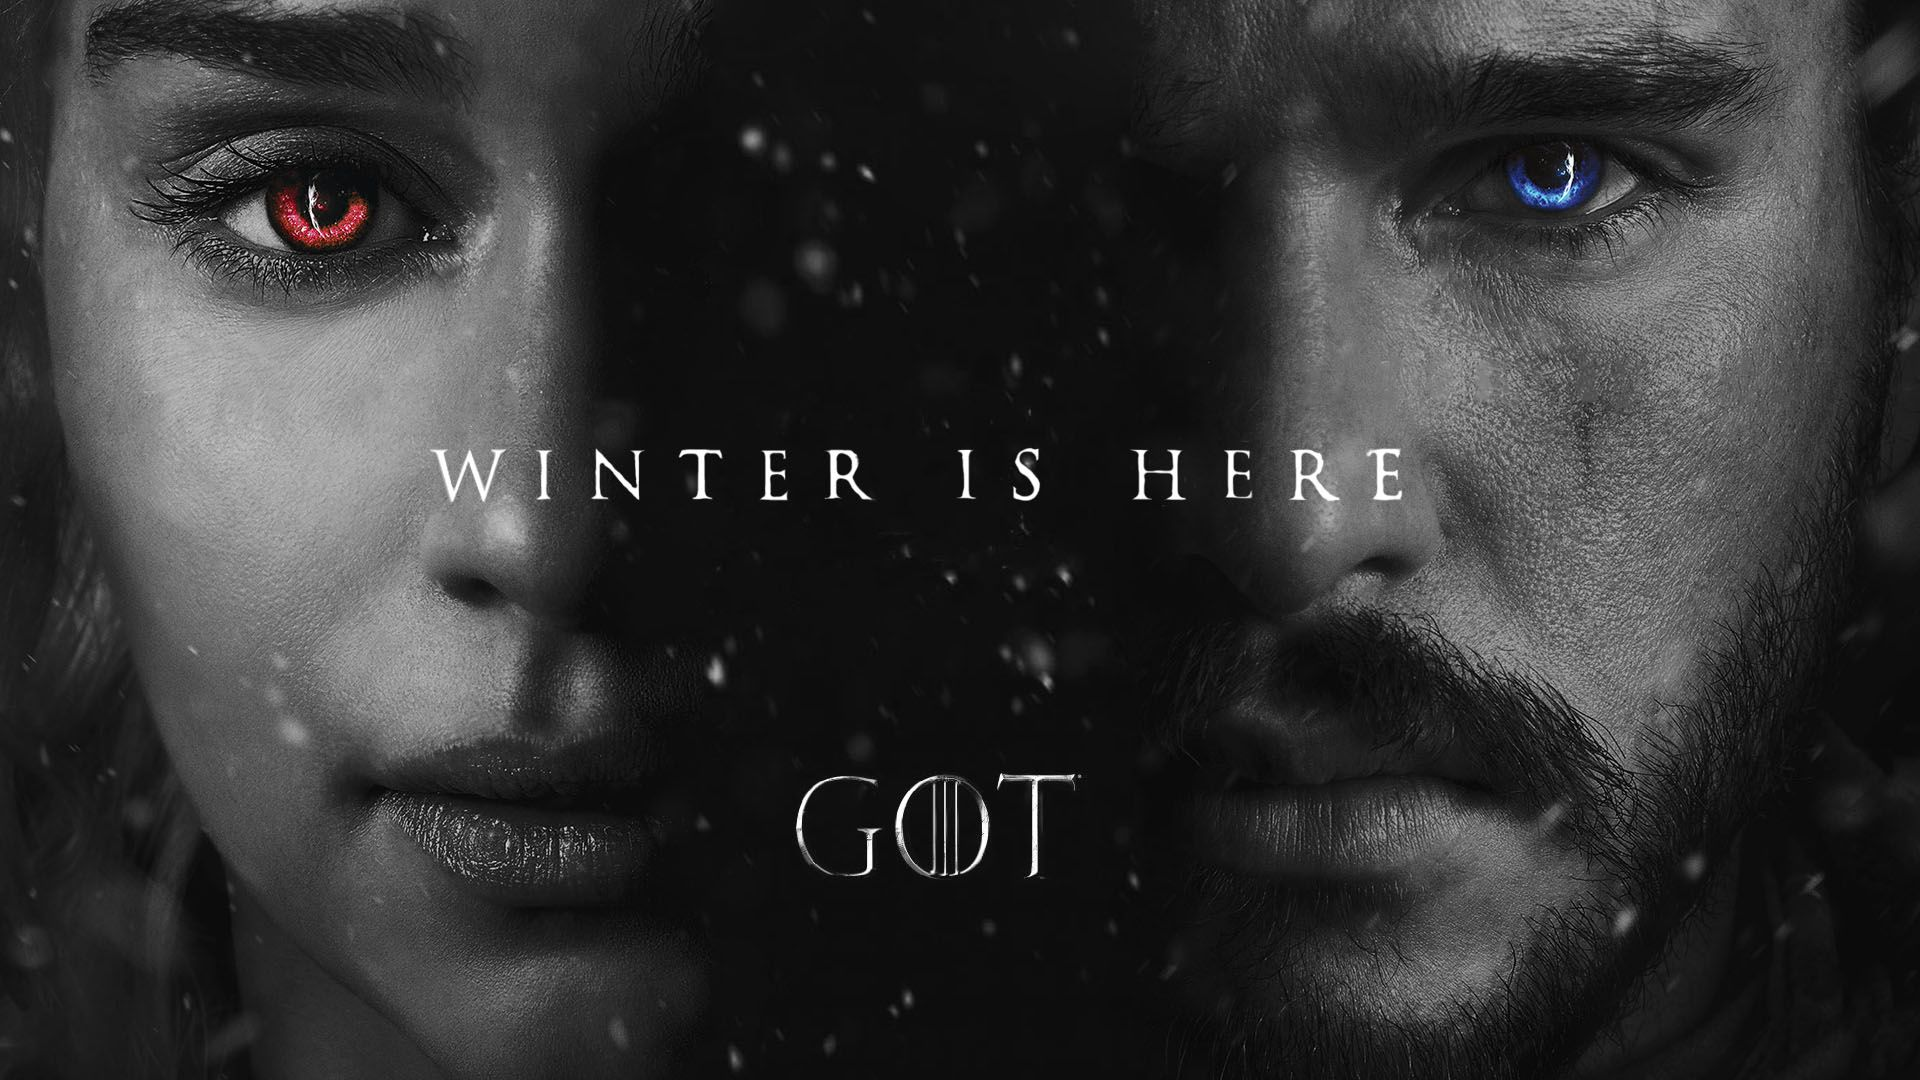 Winter Is Coming Wallpaper Group 48 Hd Wallpapers Winter Is Coming Wallpaper Fan Theories Best Games